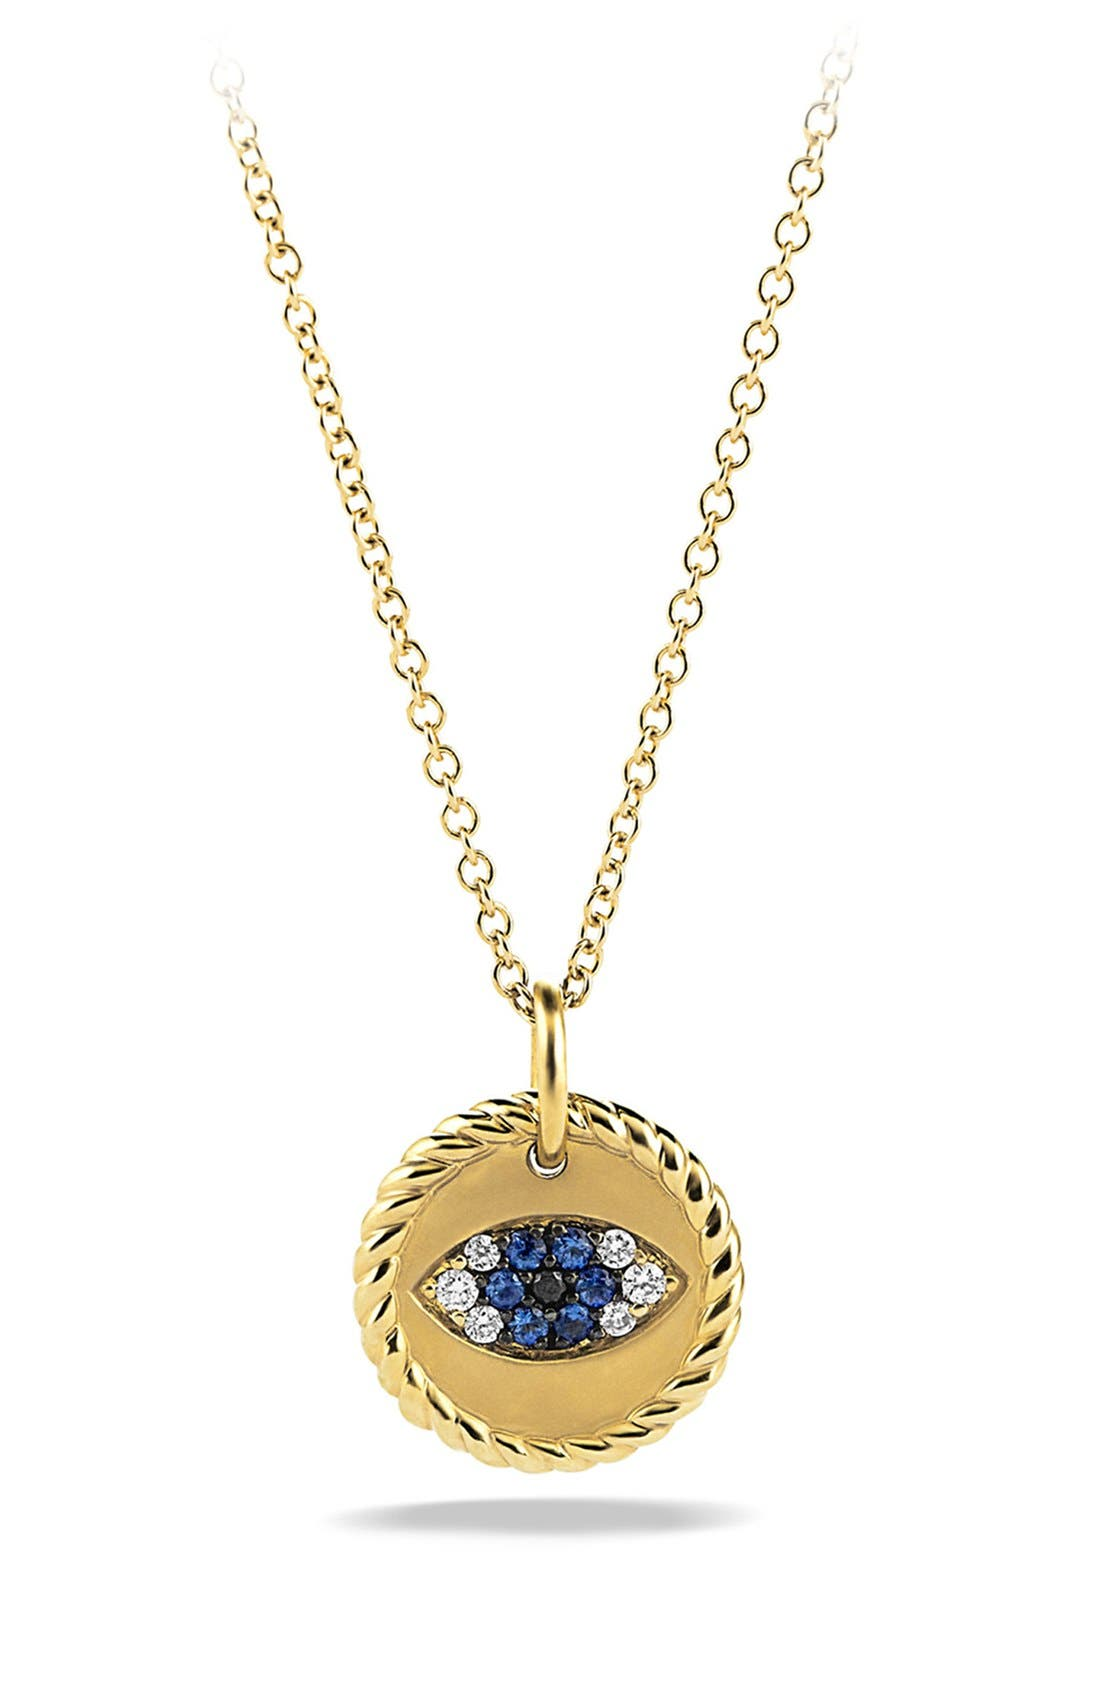 'Cable Collectibles' Evil Eye Charm Necklace with Blue Sapphire, Black Diamonds and Diamonds in Gold,                             Main thumbnail 1, color,                             BLUE SAPPHIRE/ DIAMOND